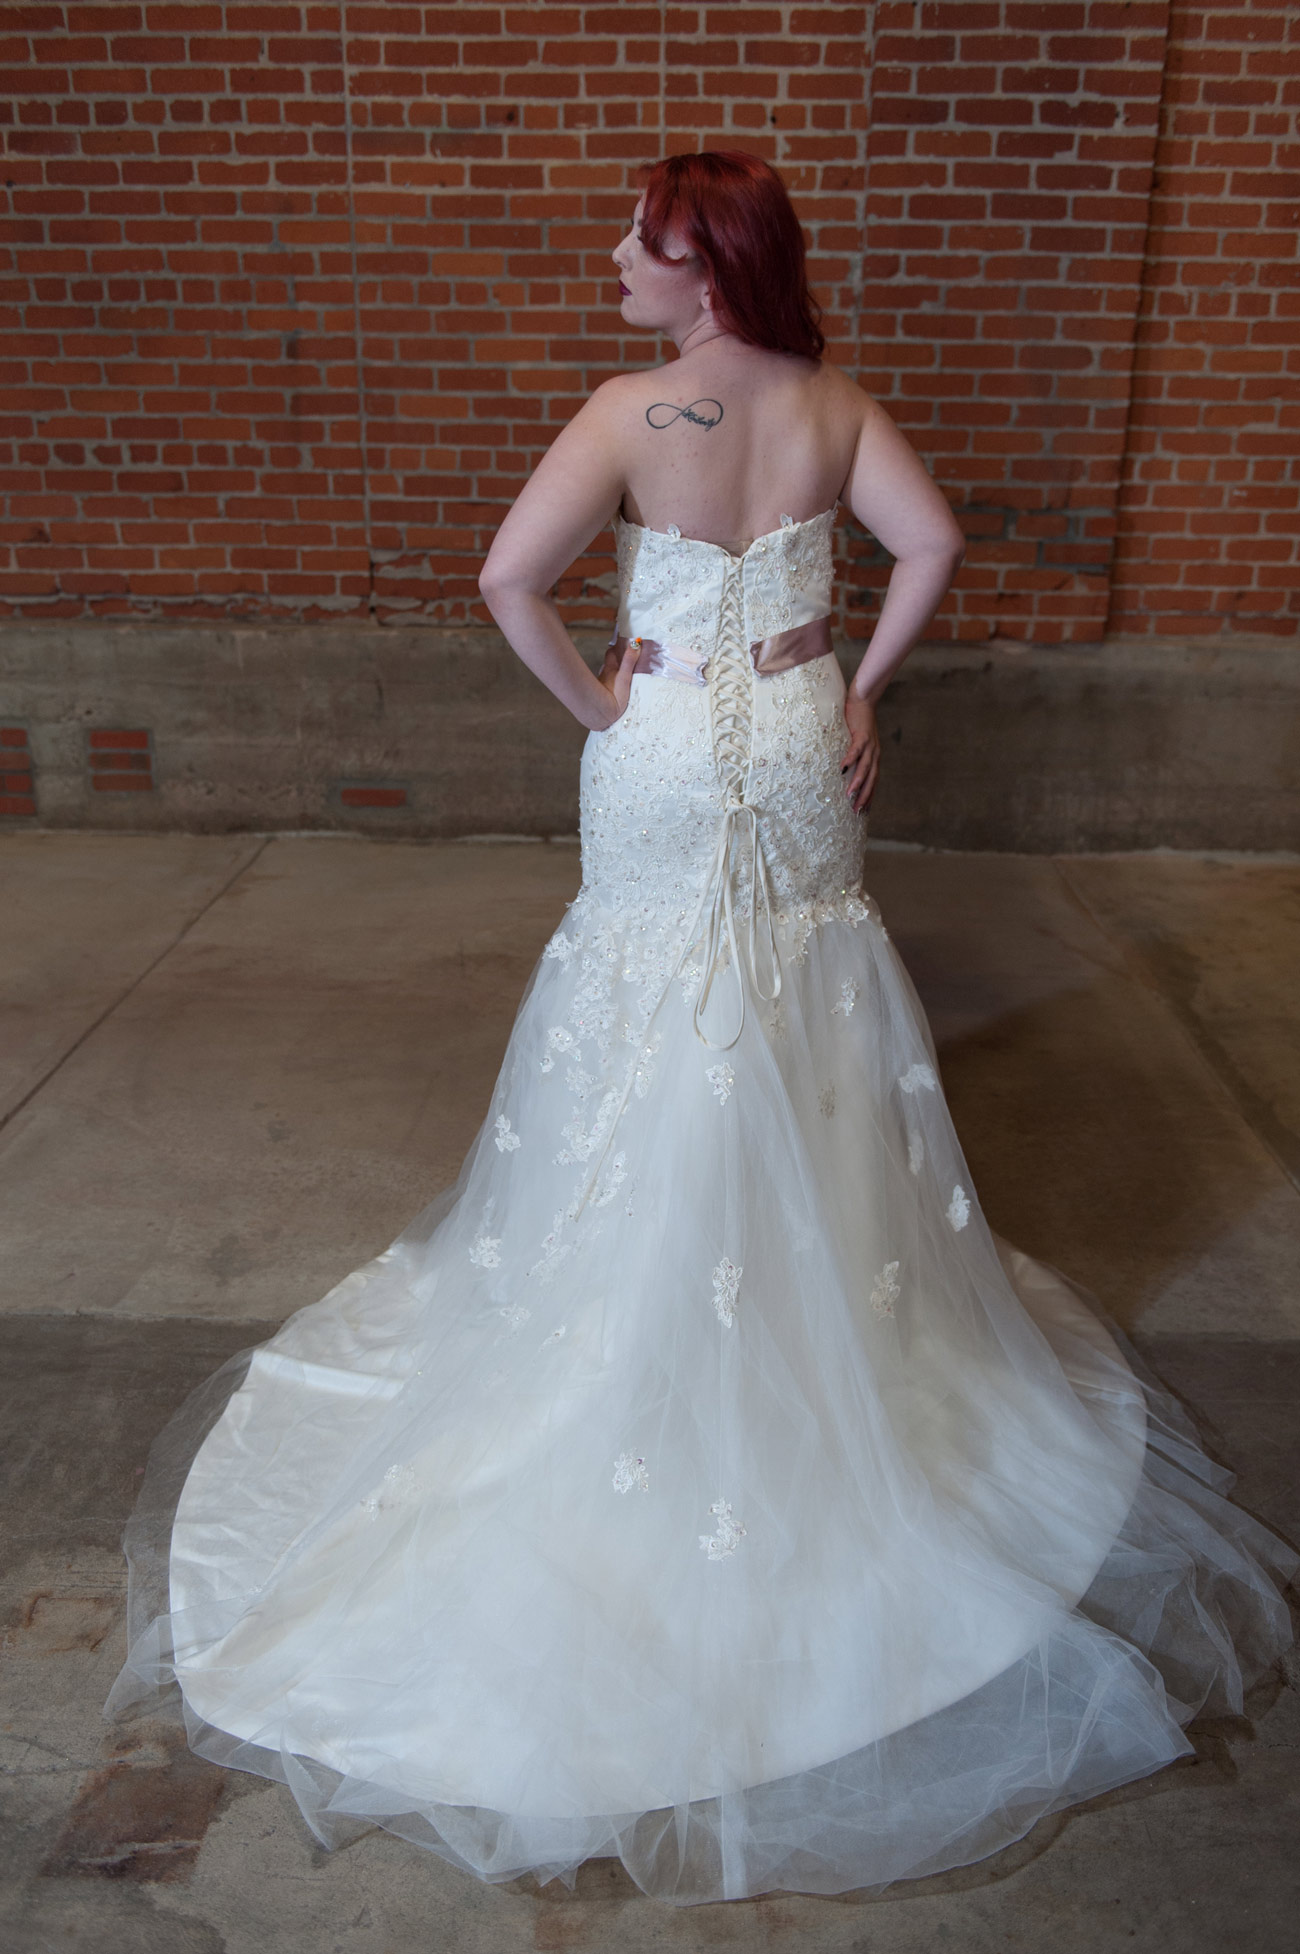 Buyer beware knock off wedding gowns for Knock off wedding dresses